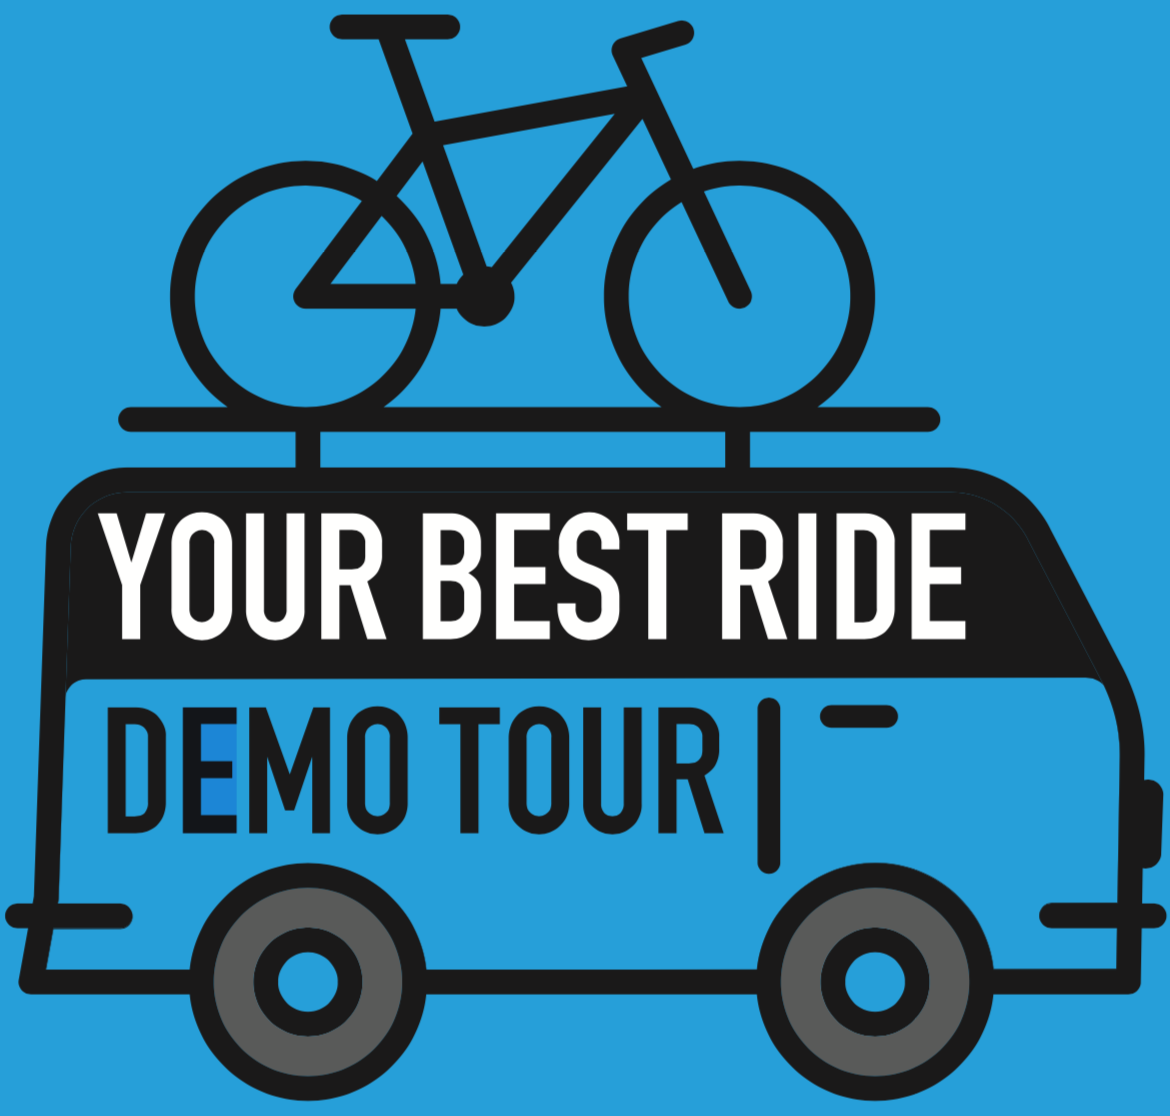 Your Best Ride Demo Tour